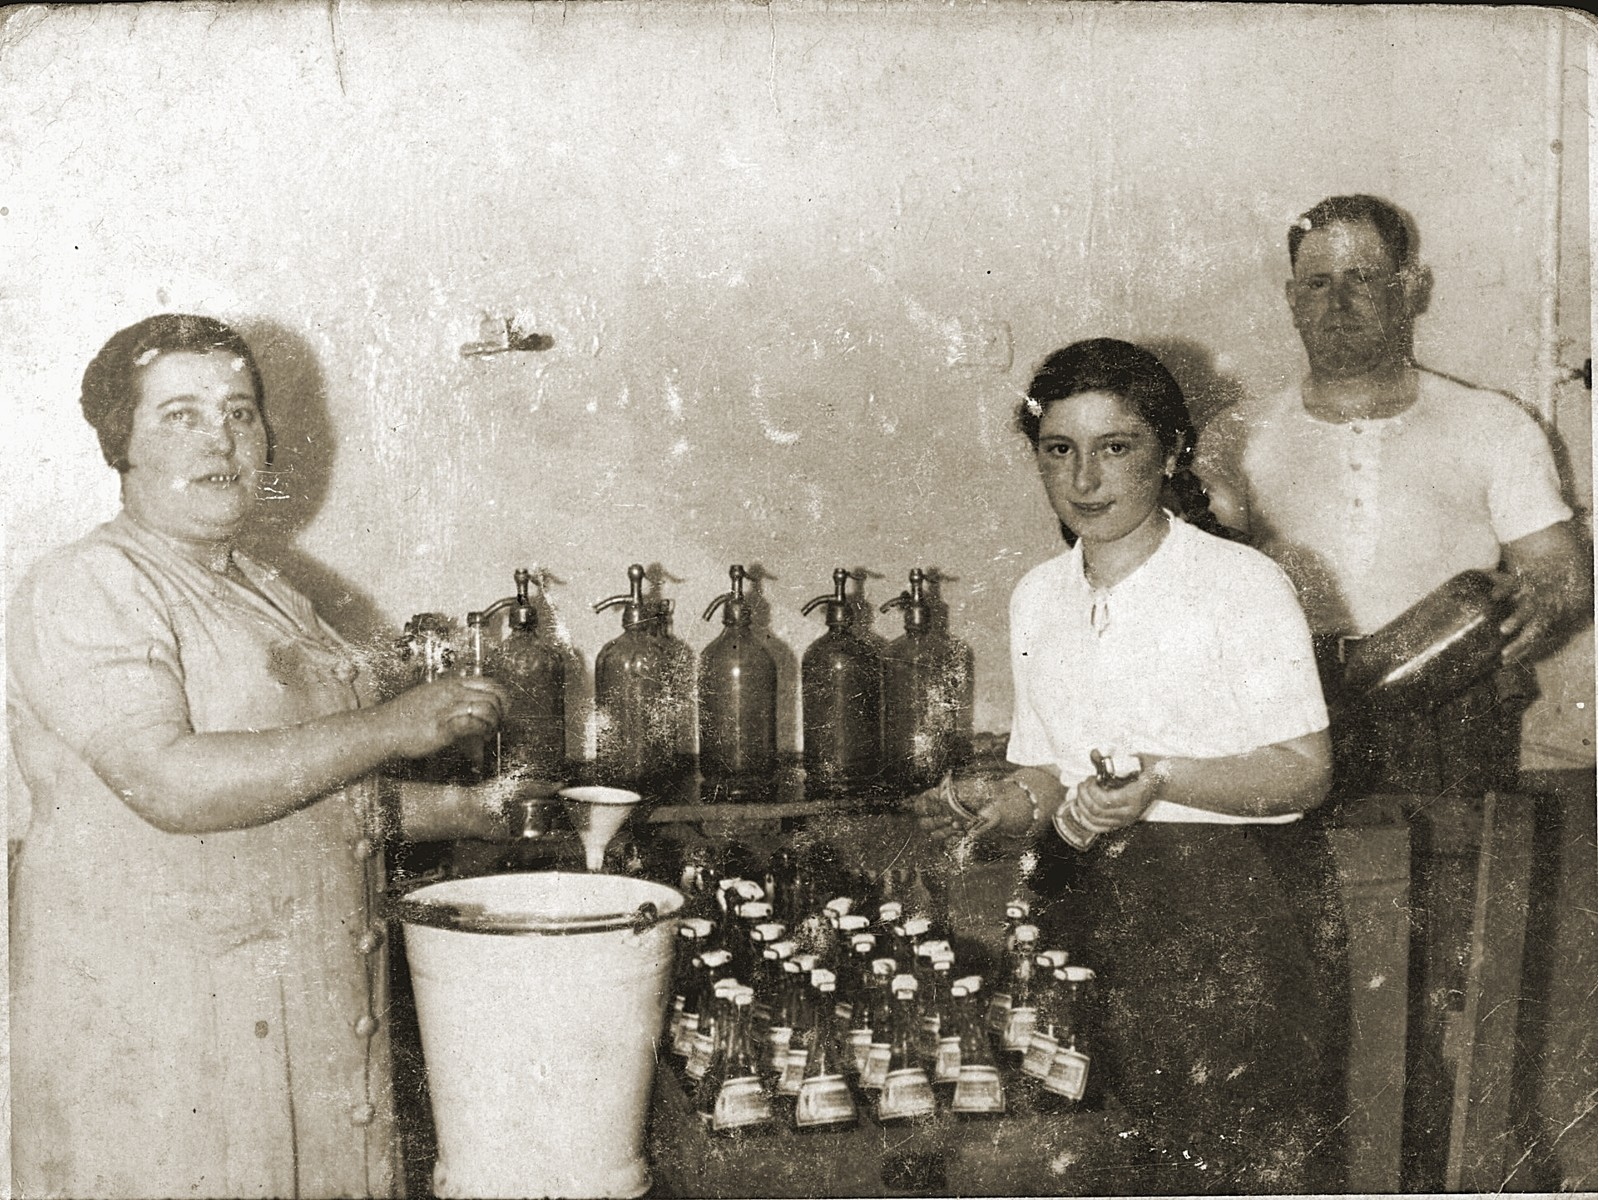 The Cawadel family fills bottles of soda in their factory.  From left to right are Kayla Puterschnit Cawadel, Mania Cawadel and Wolf Cawadel.